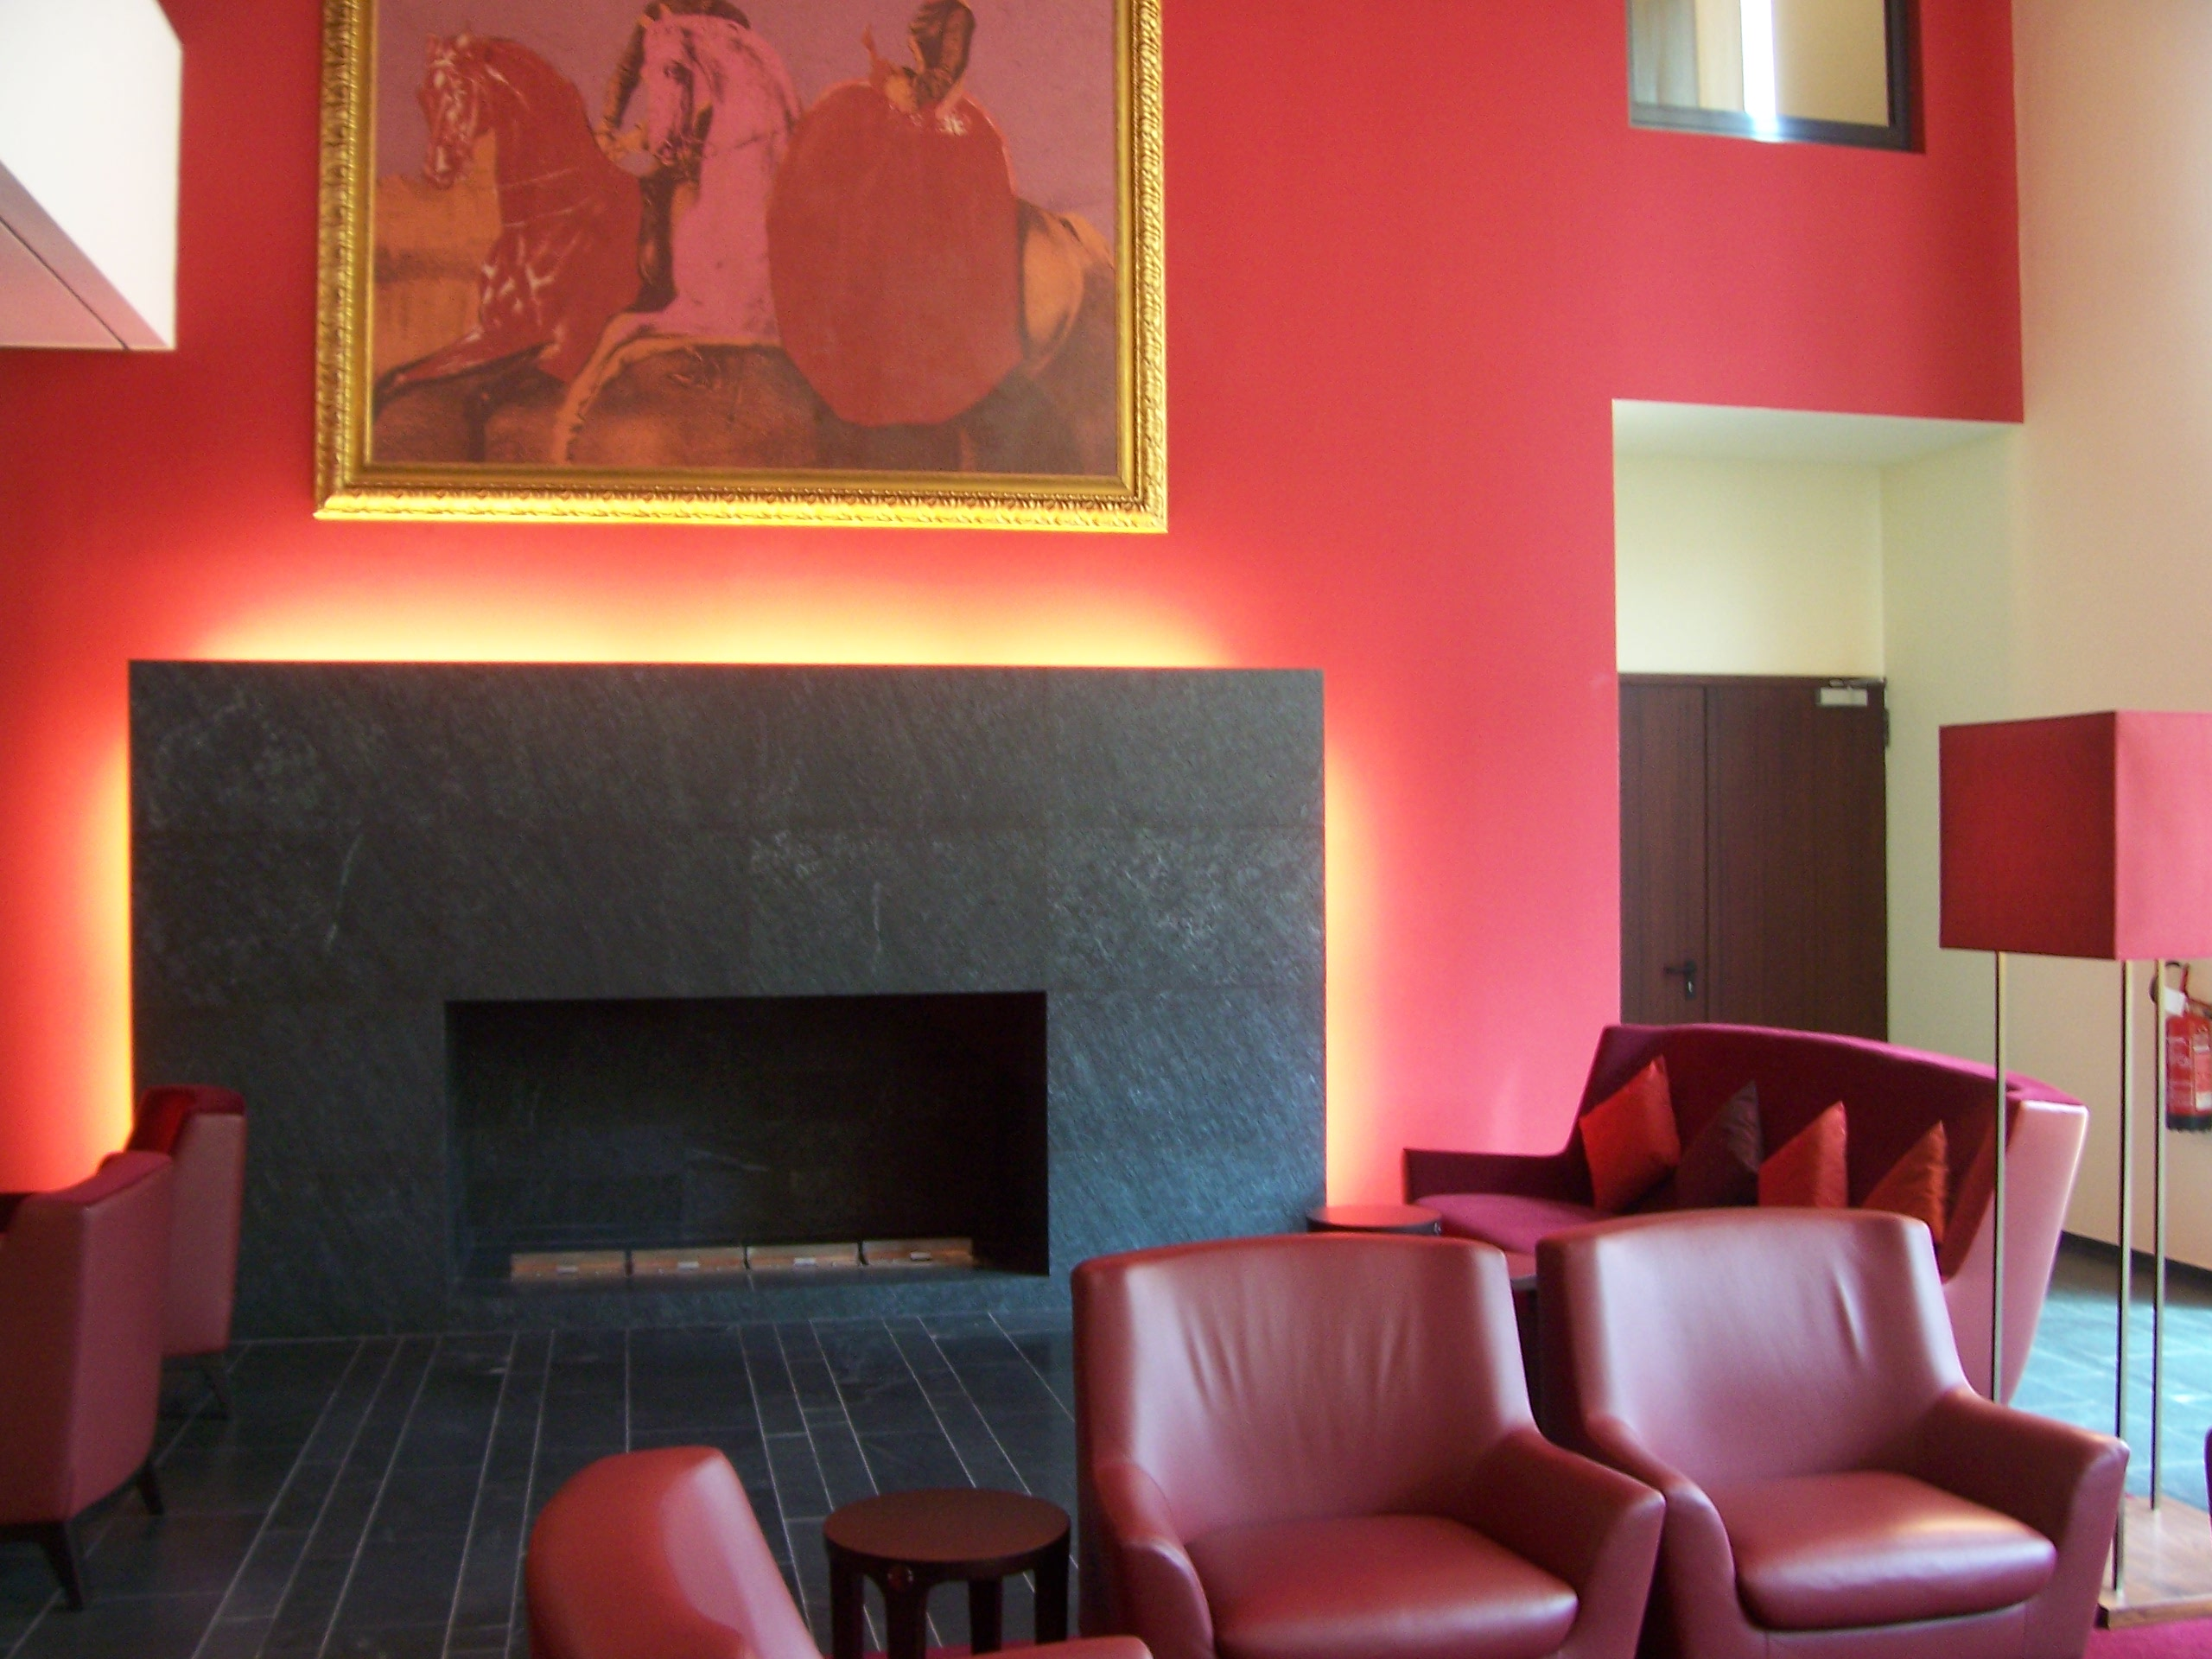 red-living-room-1229266